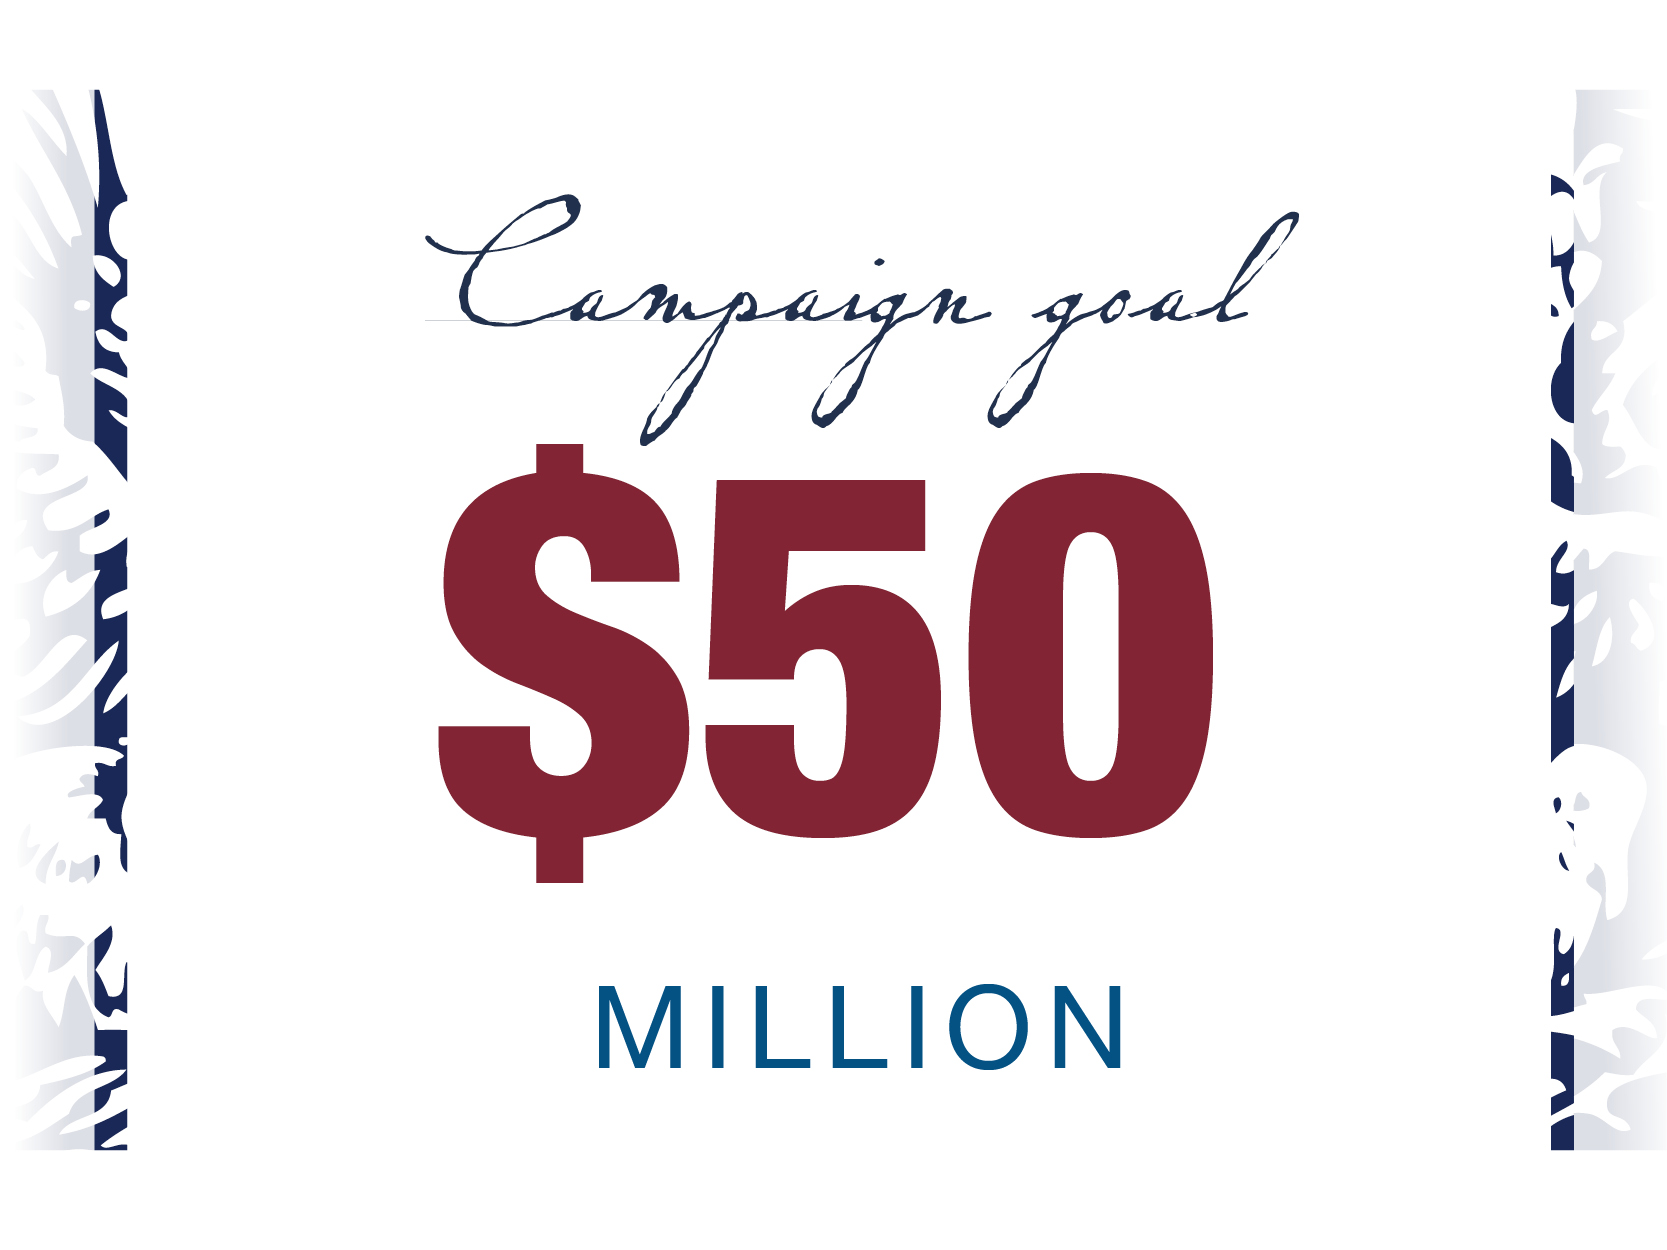 campaign front page number graphic50mill3